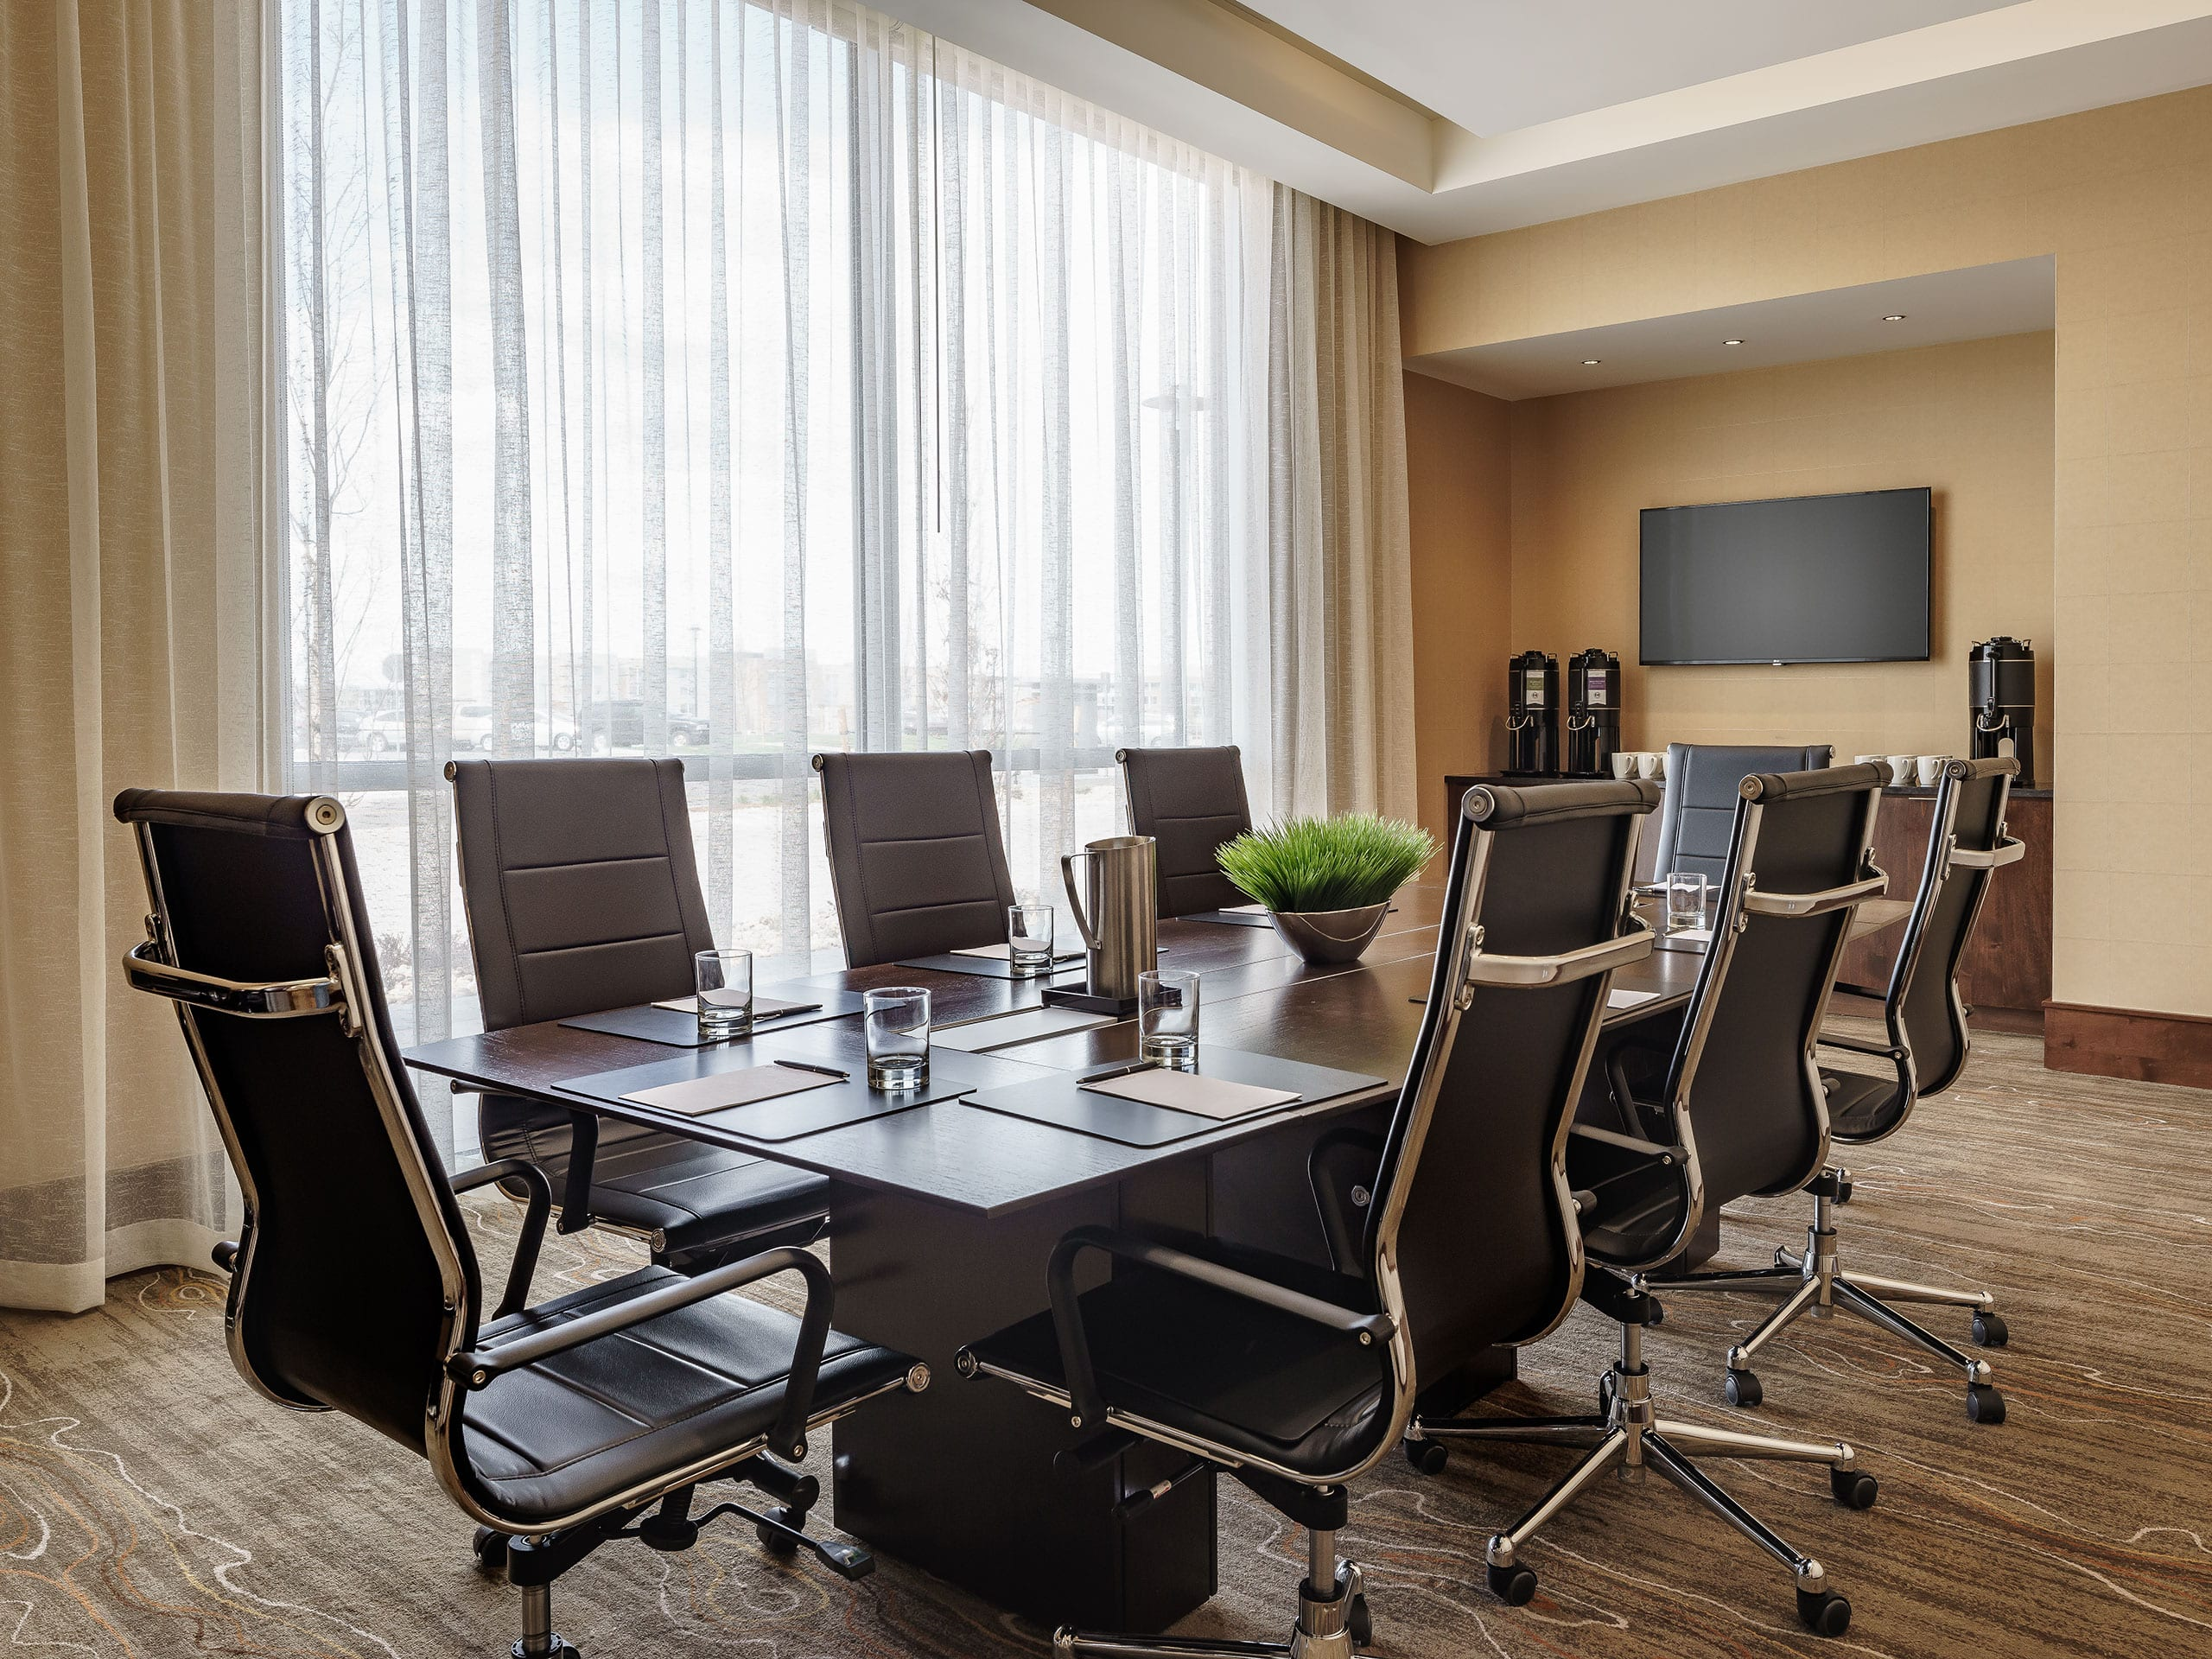 Hyatt Regency AuroraDenver Conference Center Guest Photos - Regency conference table